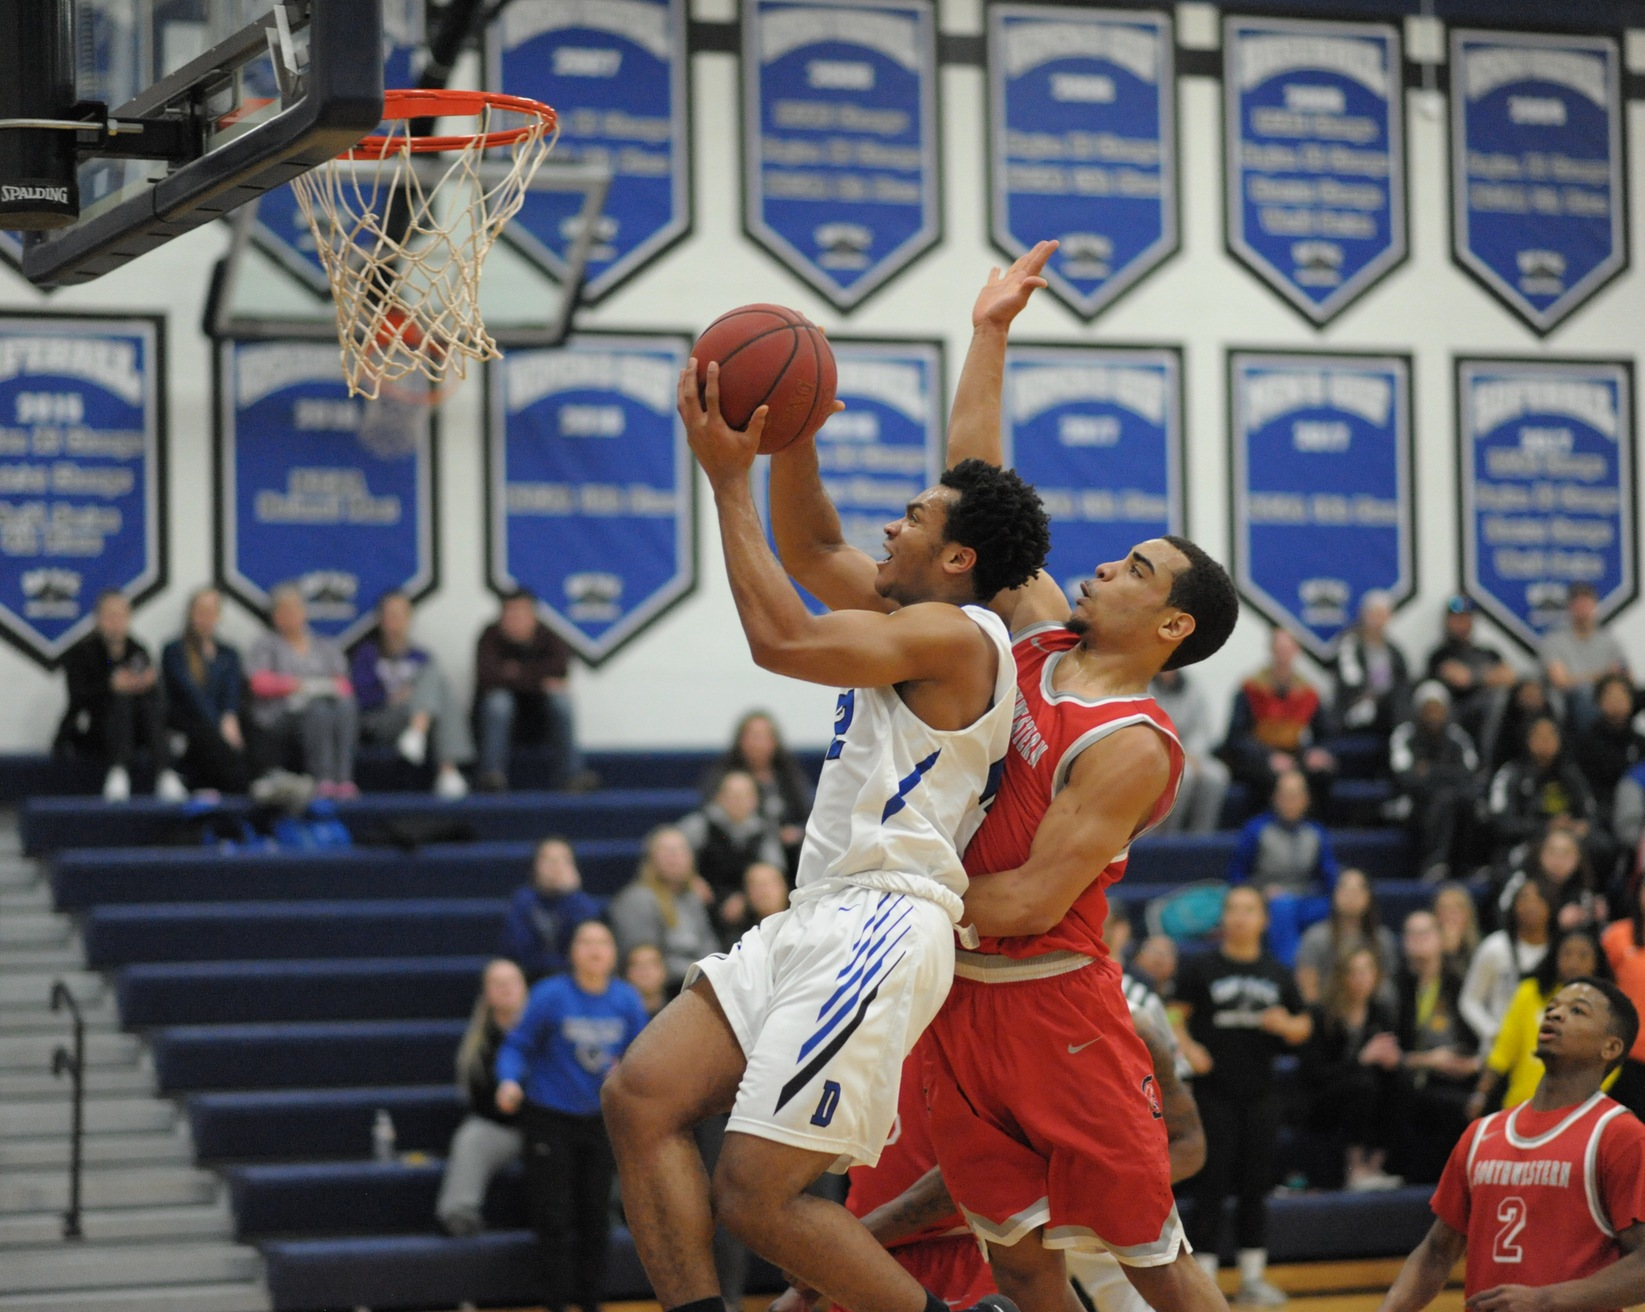 DMACC Men's Basketball Season Ends with 92-51 Loss to SWCC